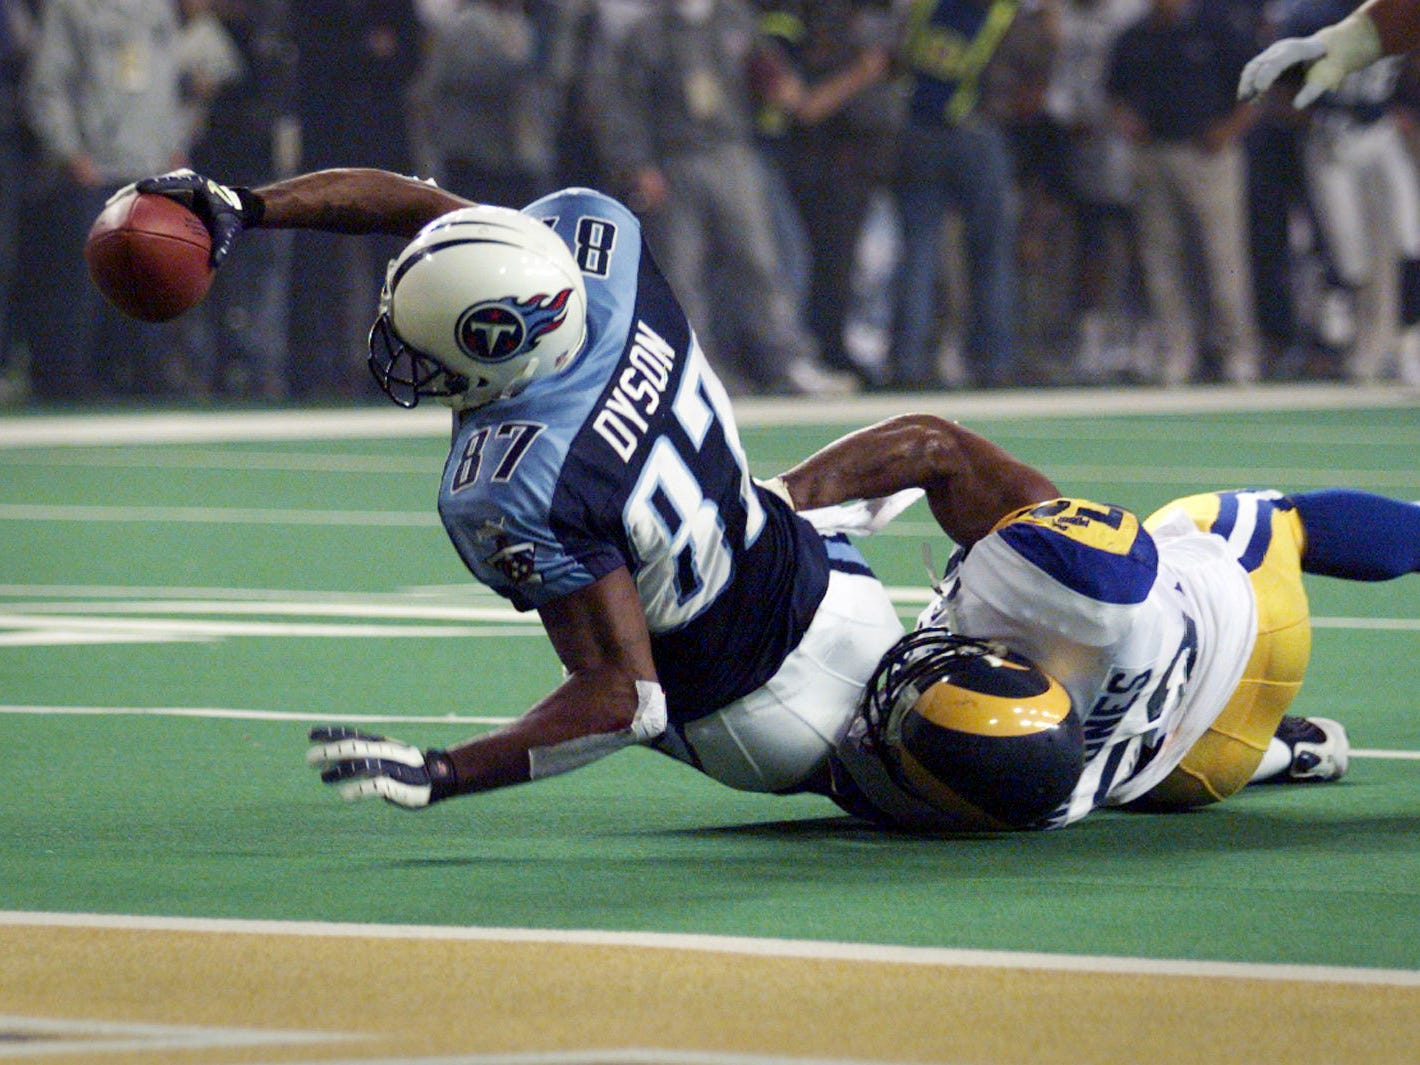 Tennessee Kevin Dyson stretches for the goal in the last play of Super Bowl XXXIV as the Titans try to score a final touchdown but the clock ran out and the St. Louis Rams won 23-16 in Atlanta Jan. 30, 2000.